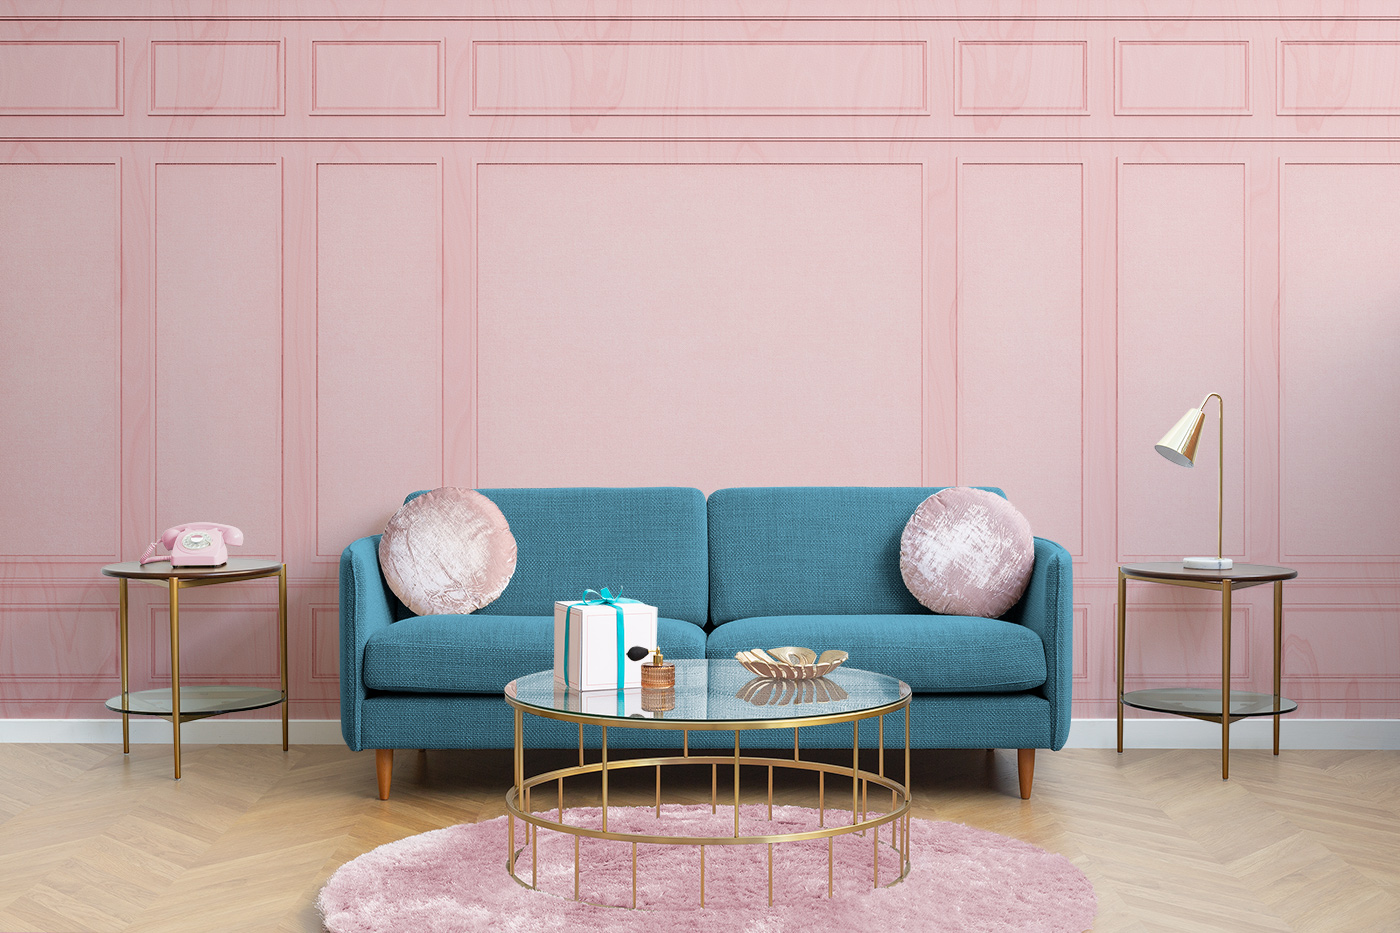 3 Wes Anderson-Inspired Wallpapers That Will Make Your Room Feel As Quirky As His Films